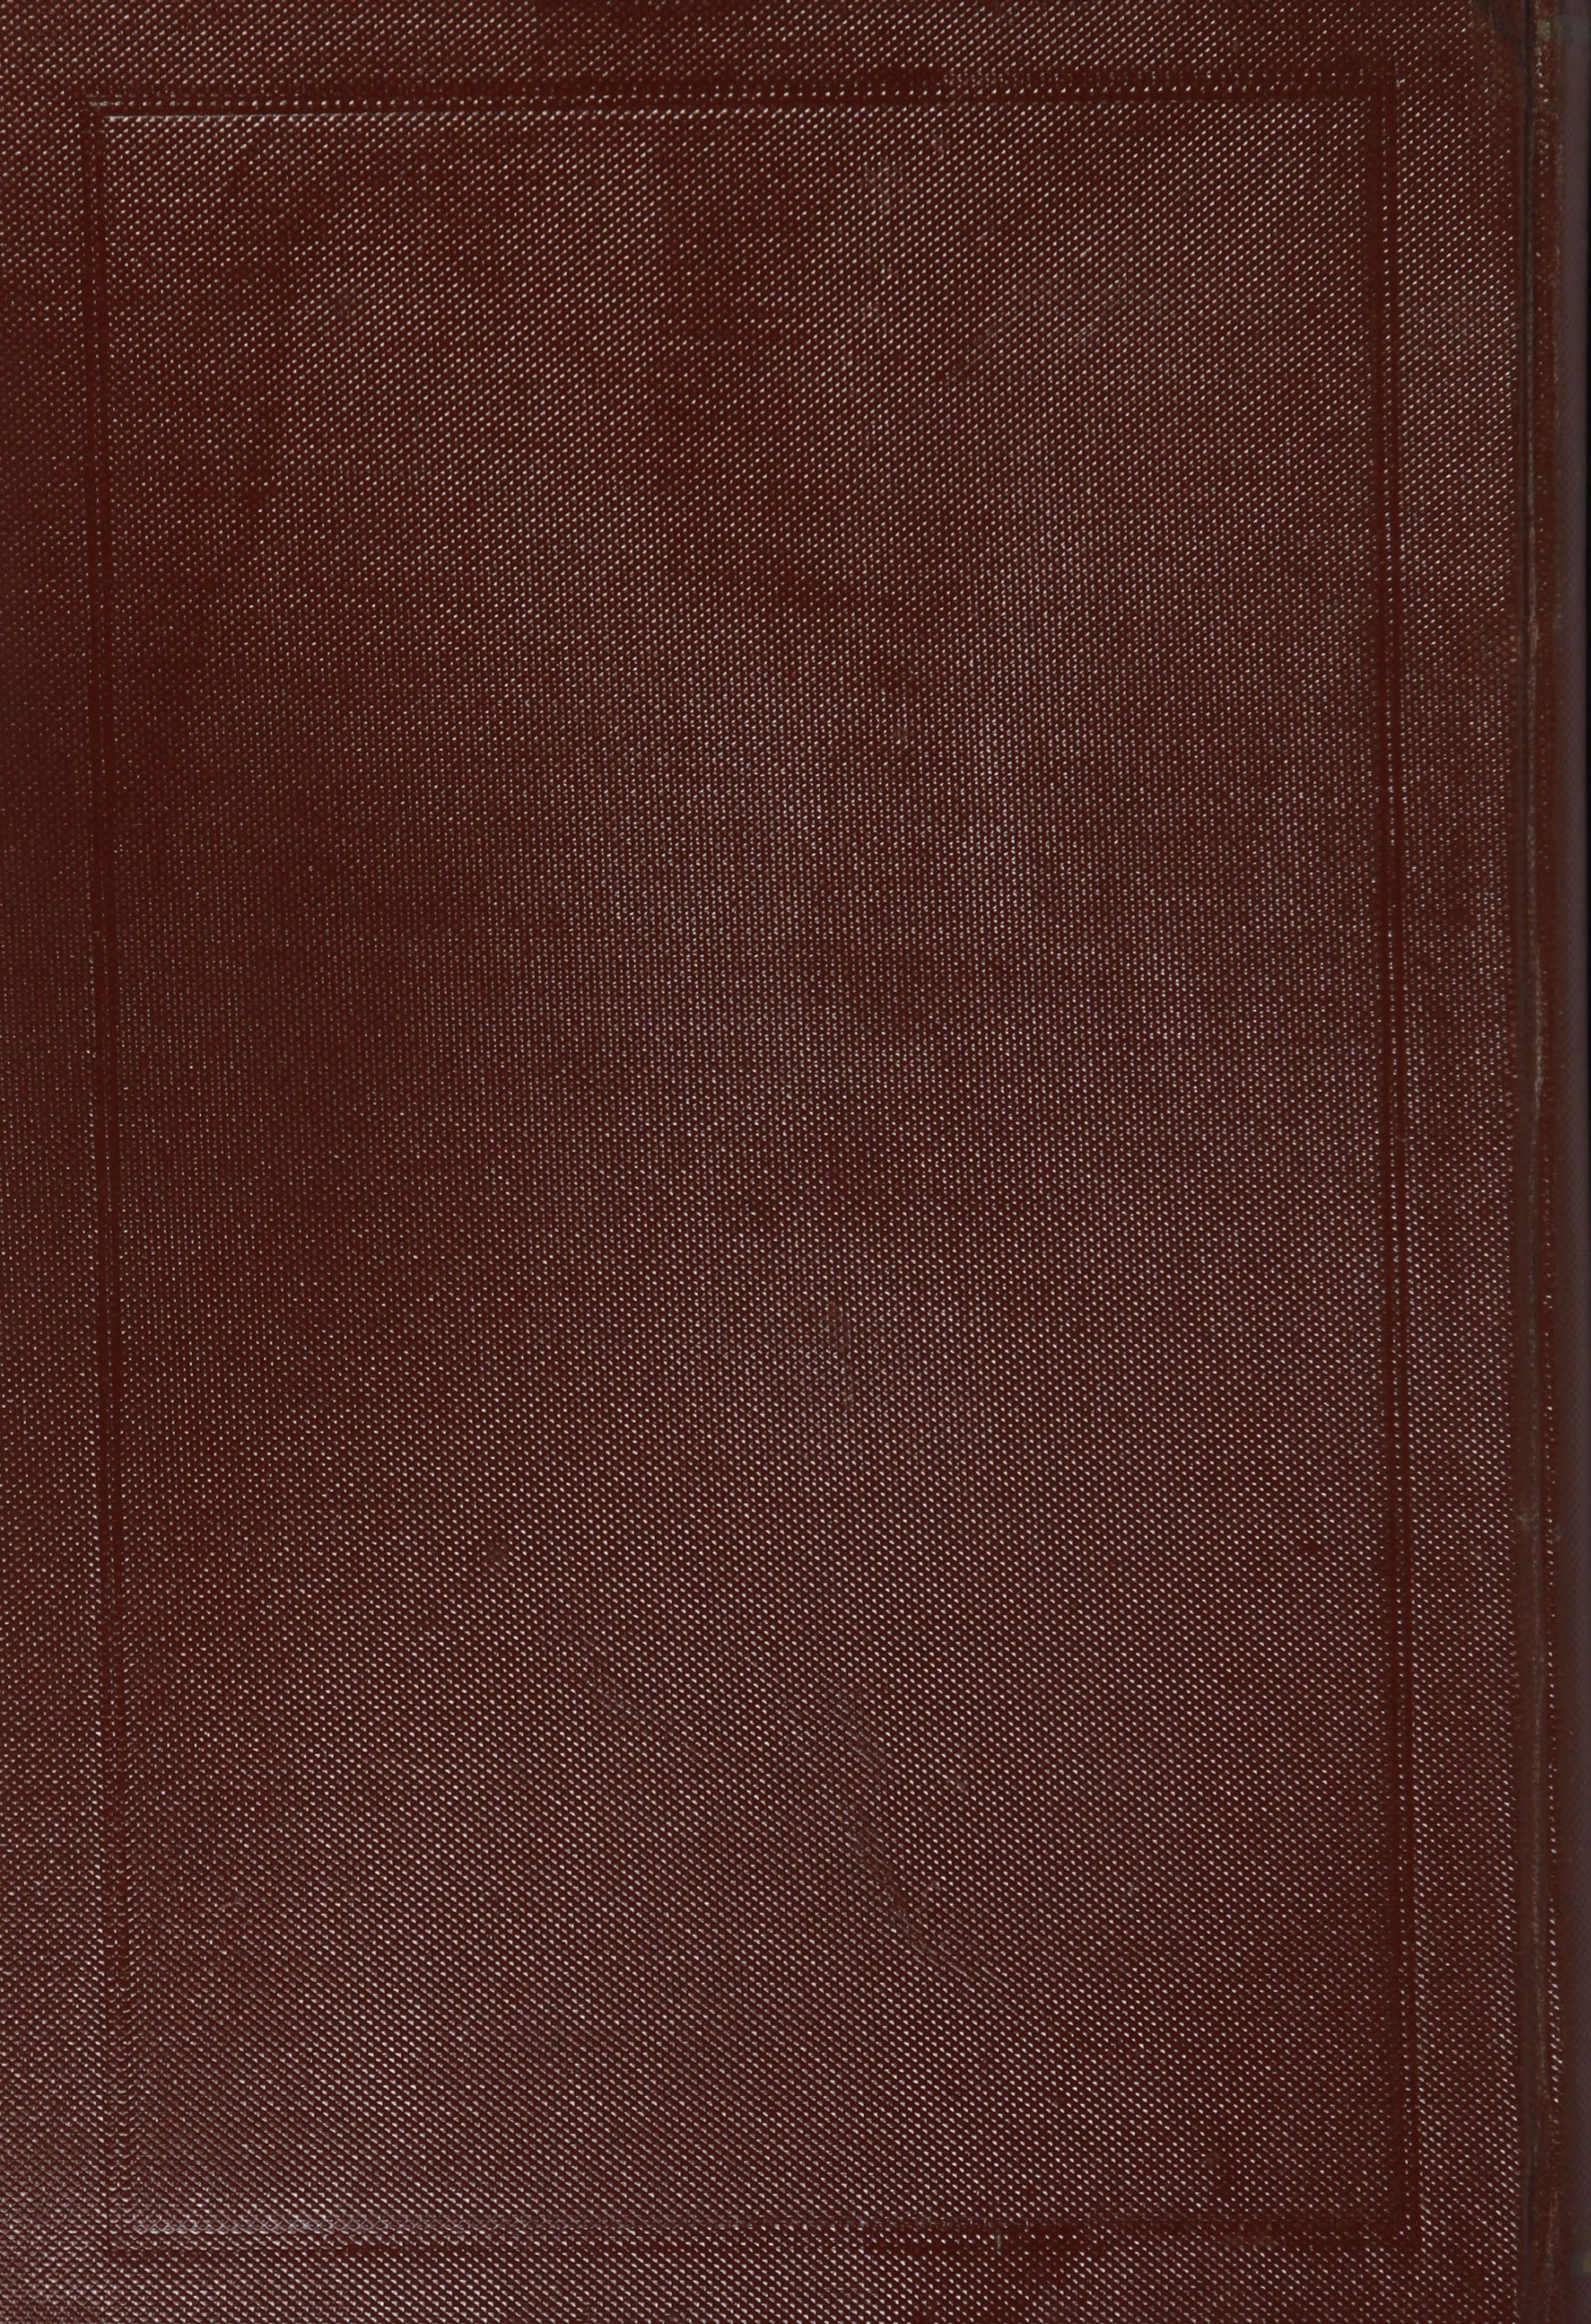 Charleston Yearbook, 1920, back cover